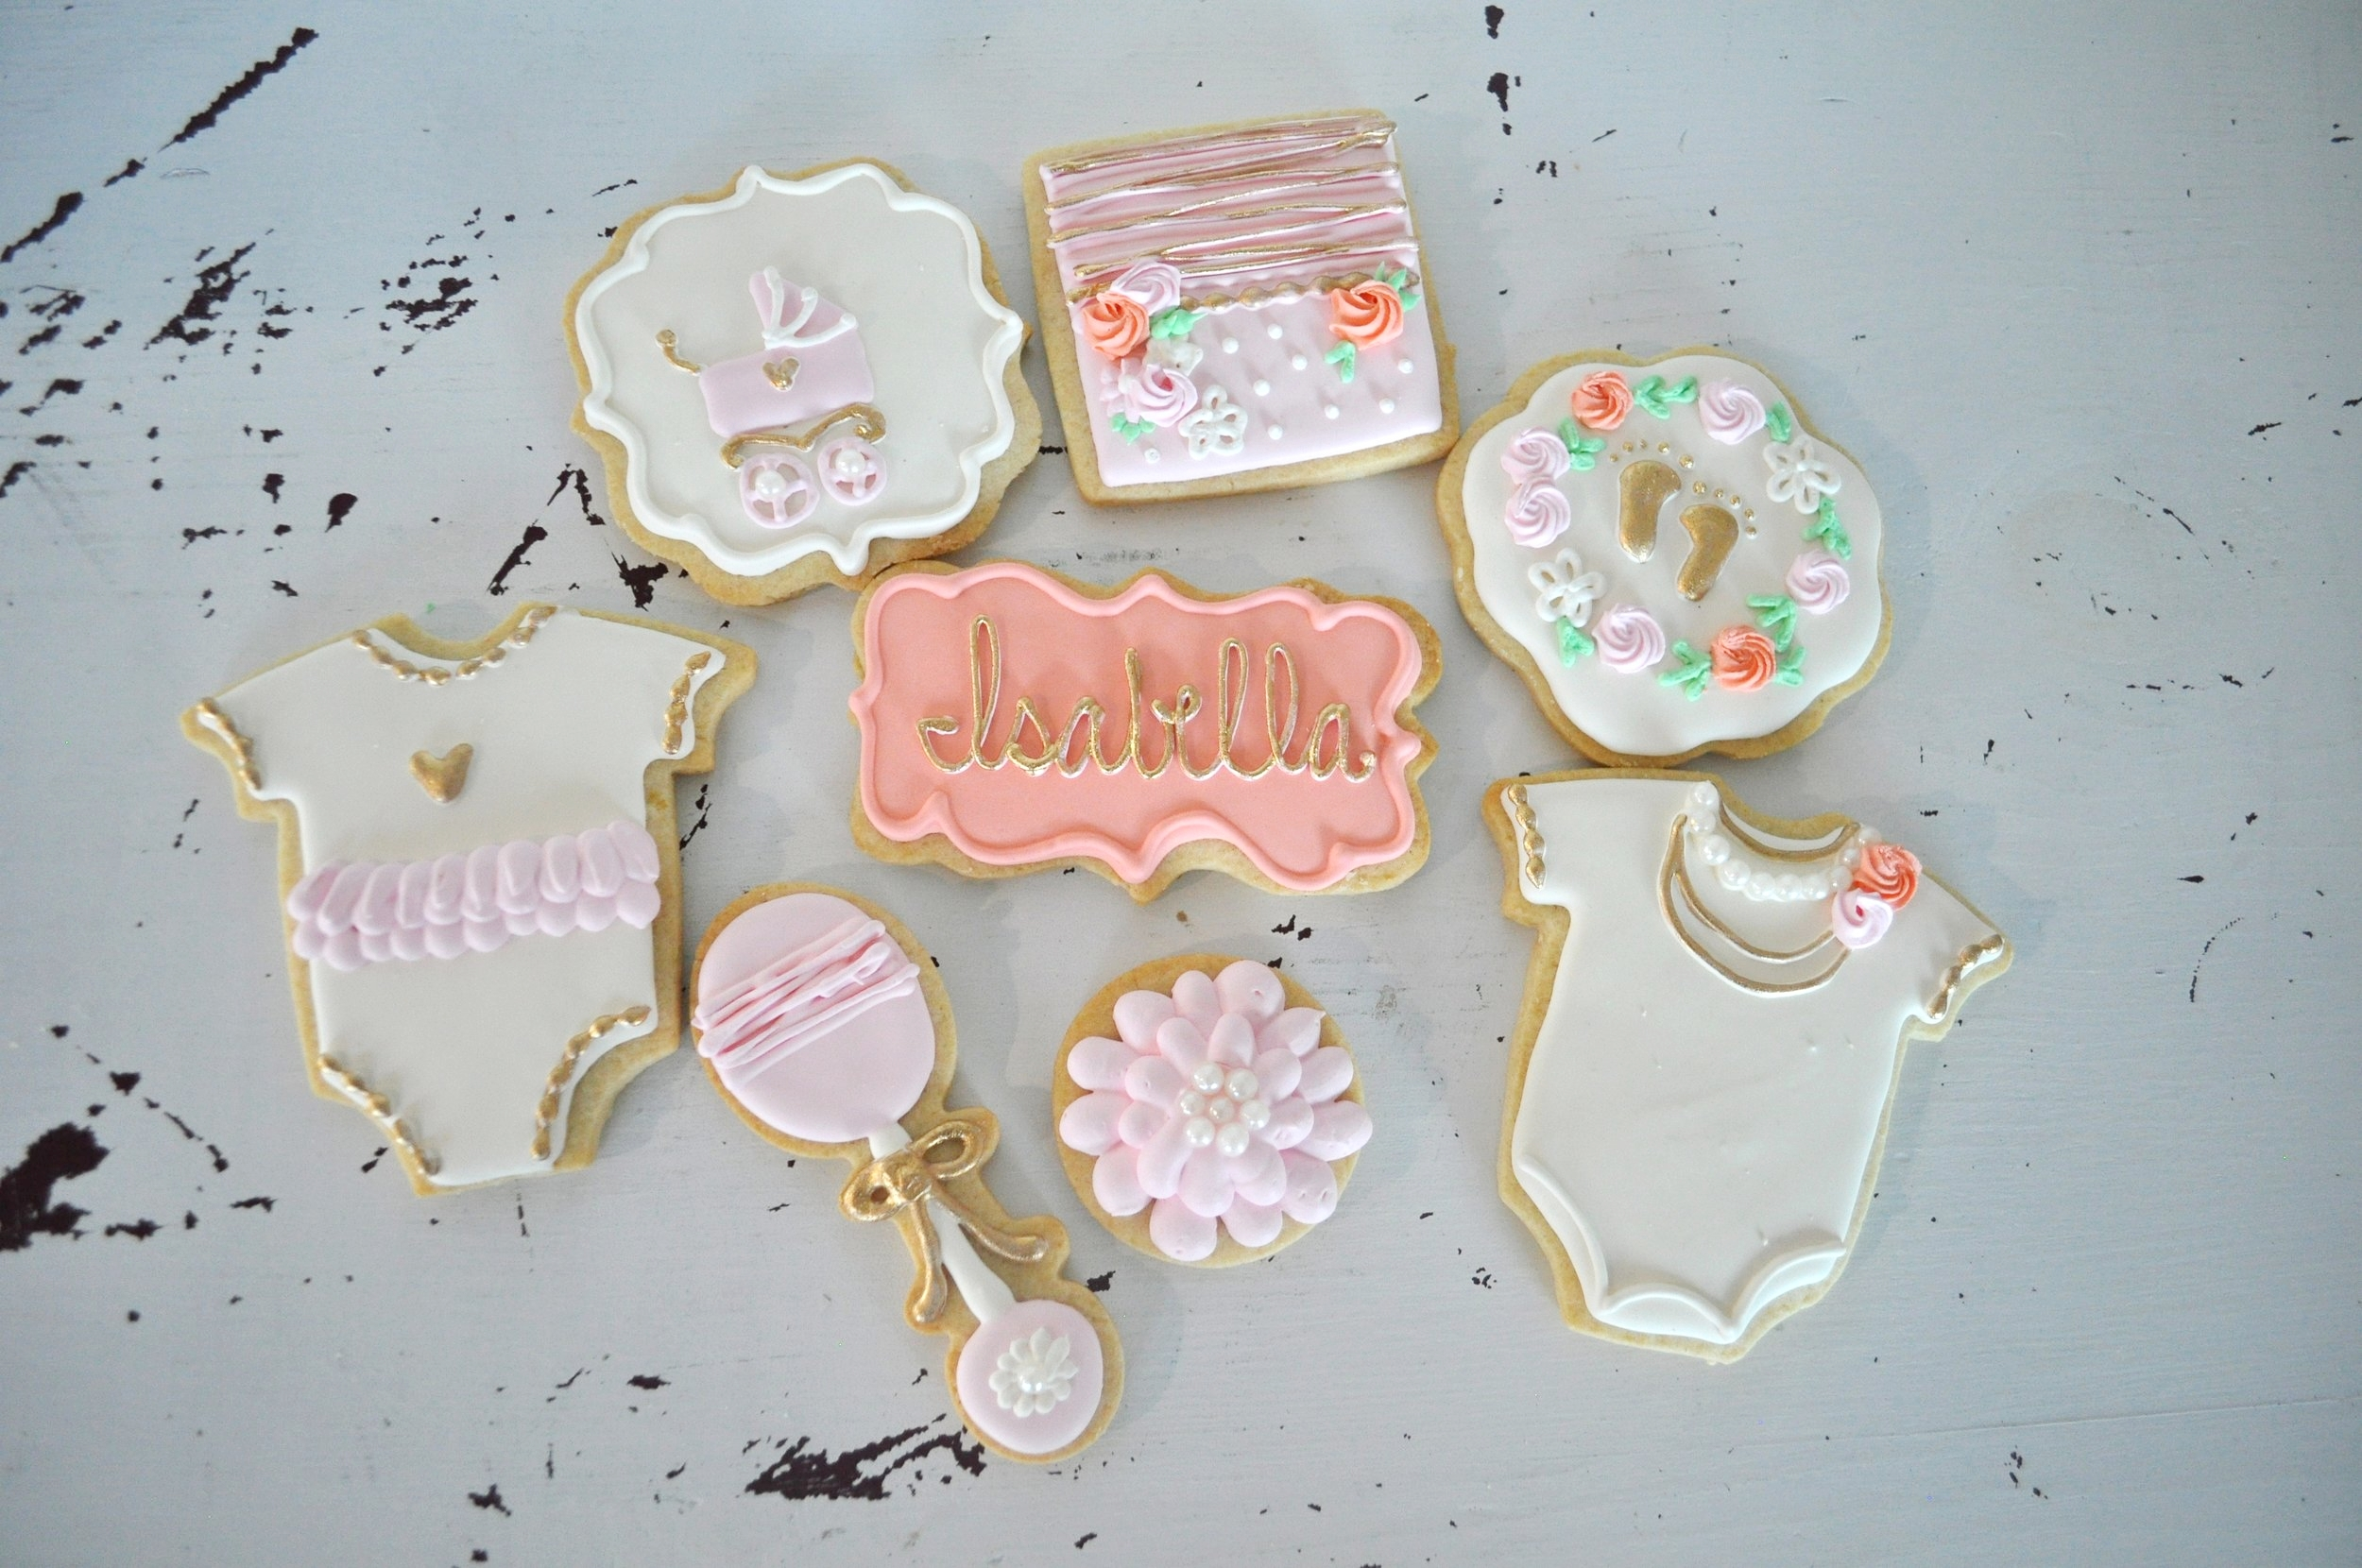 Isabella Baby Shower Cookies.jpg